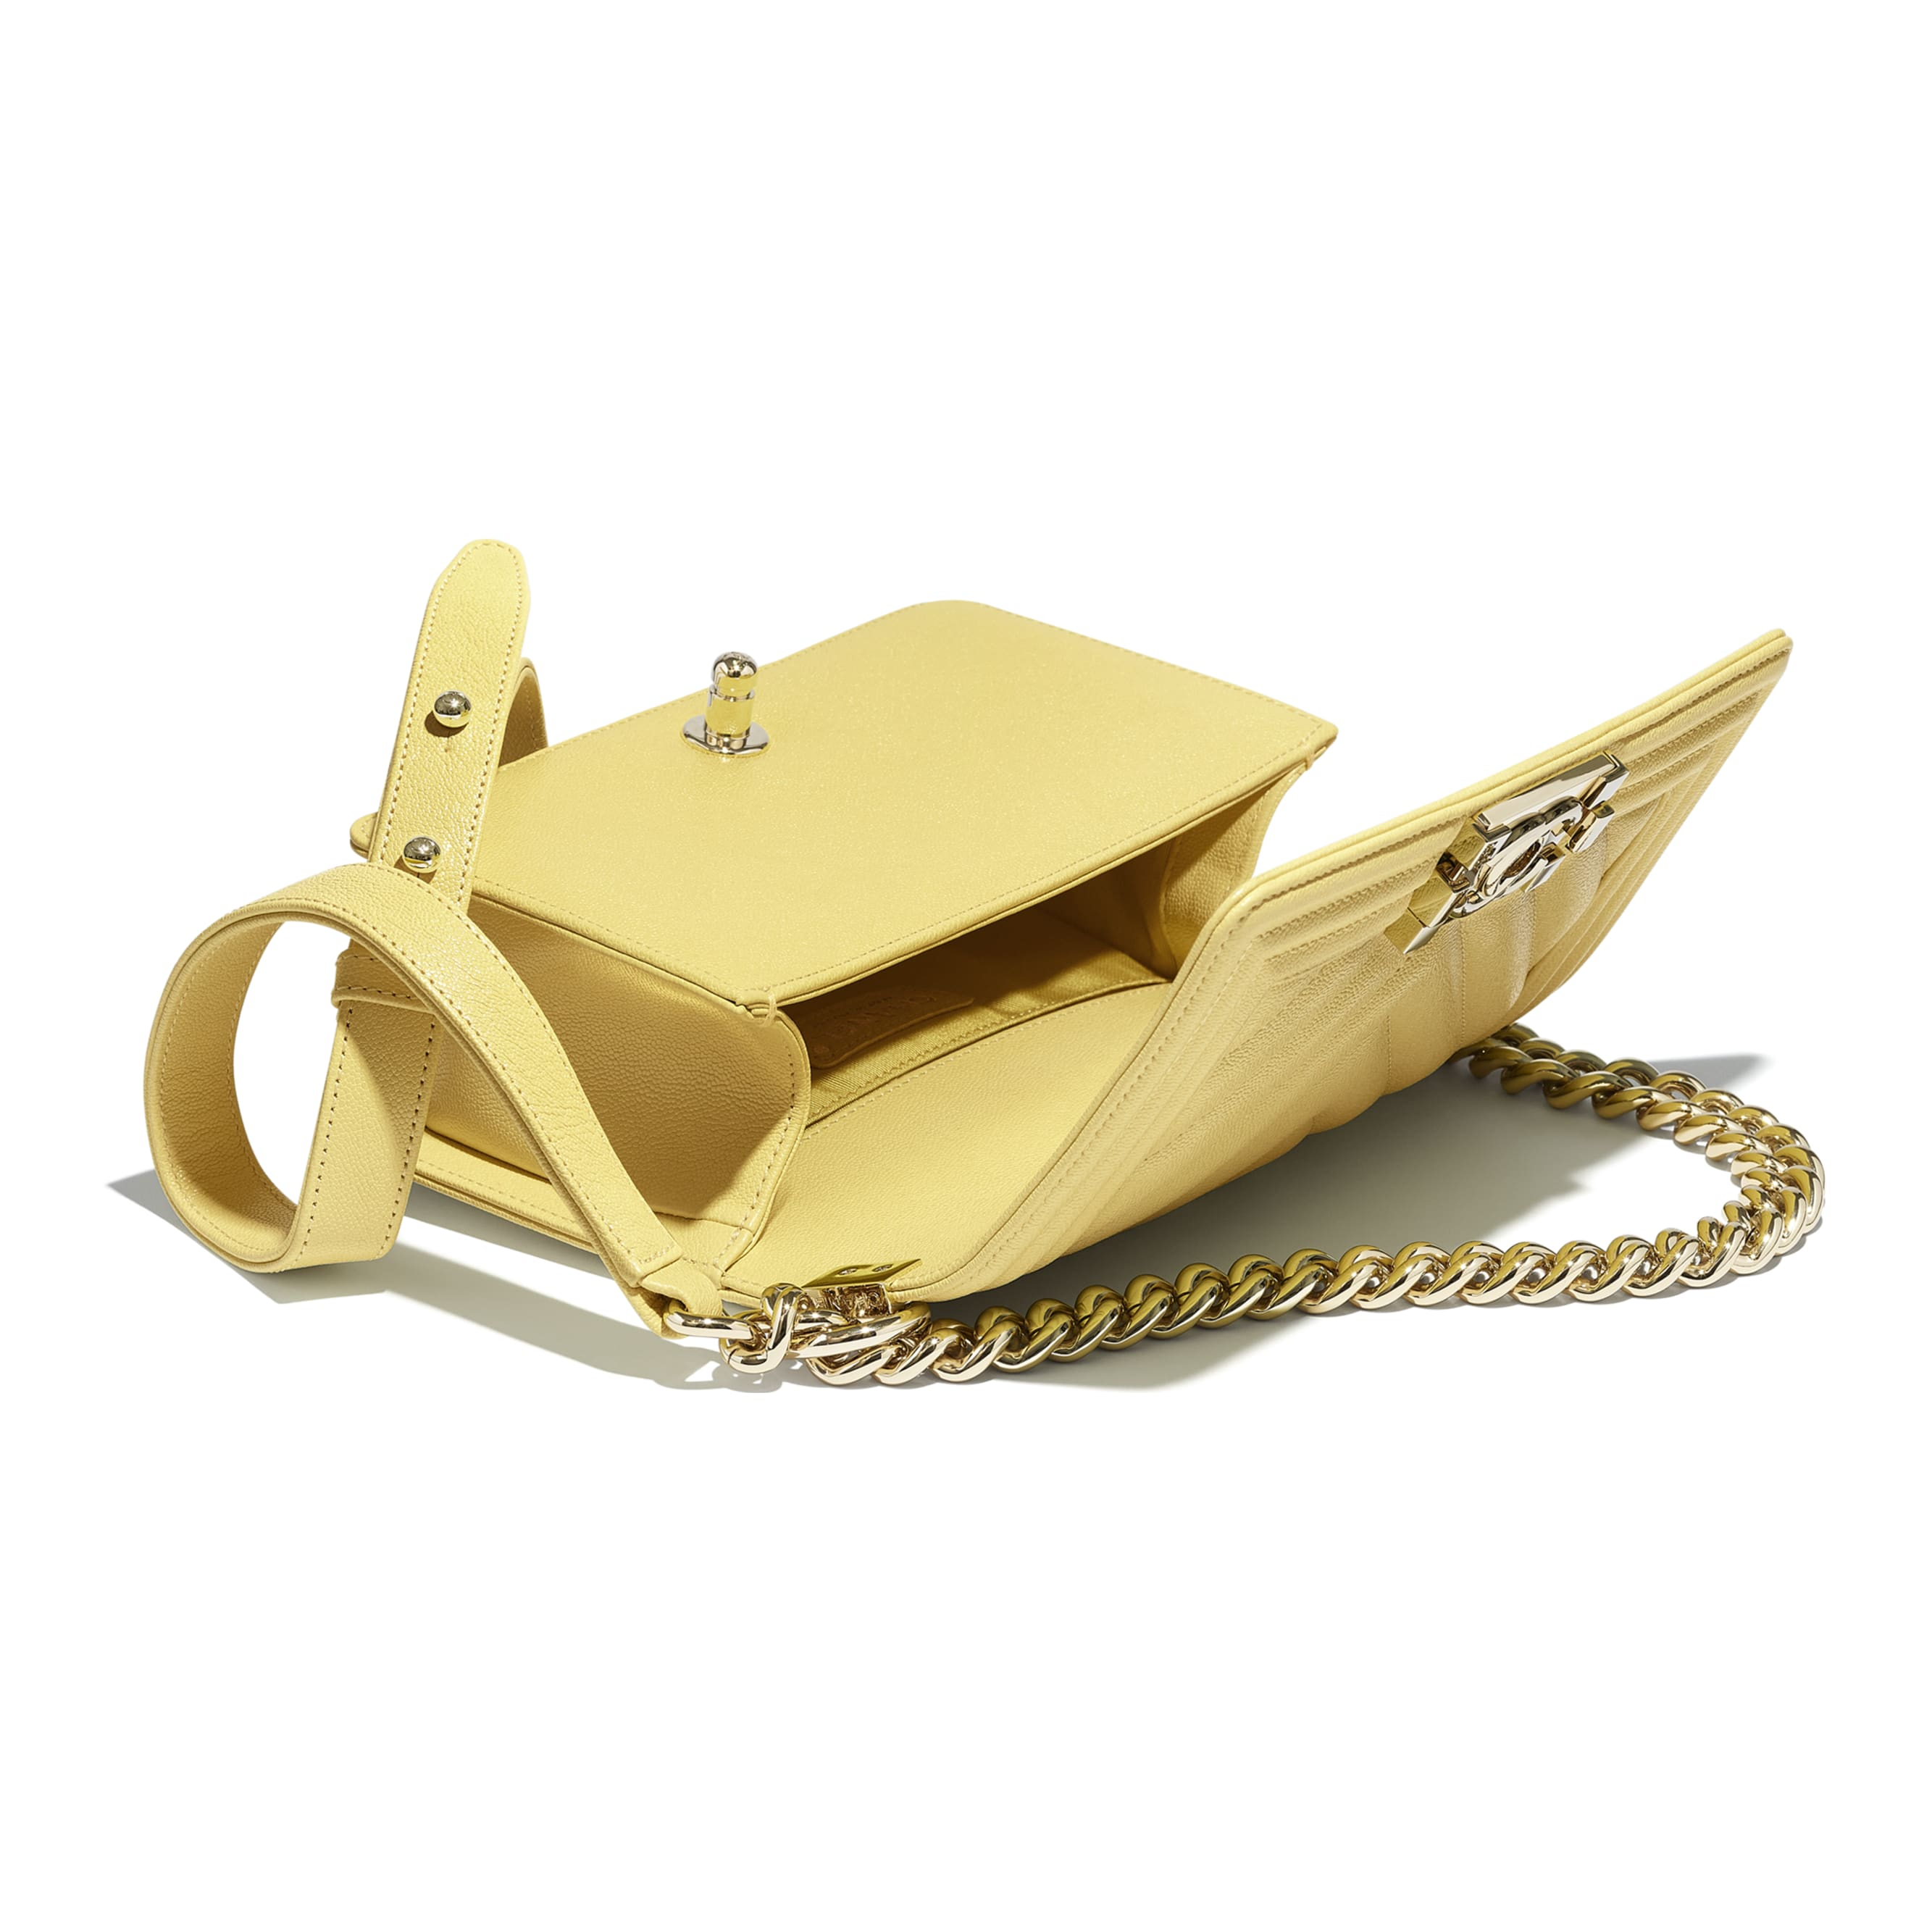 Small BOY CHANEL Handbag - Yellow - Grained Calfskin & Gold-Tone Metal - CHANEL - Other view - see standard sized version